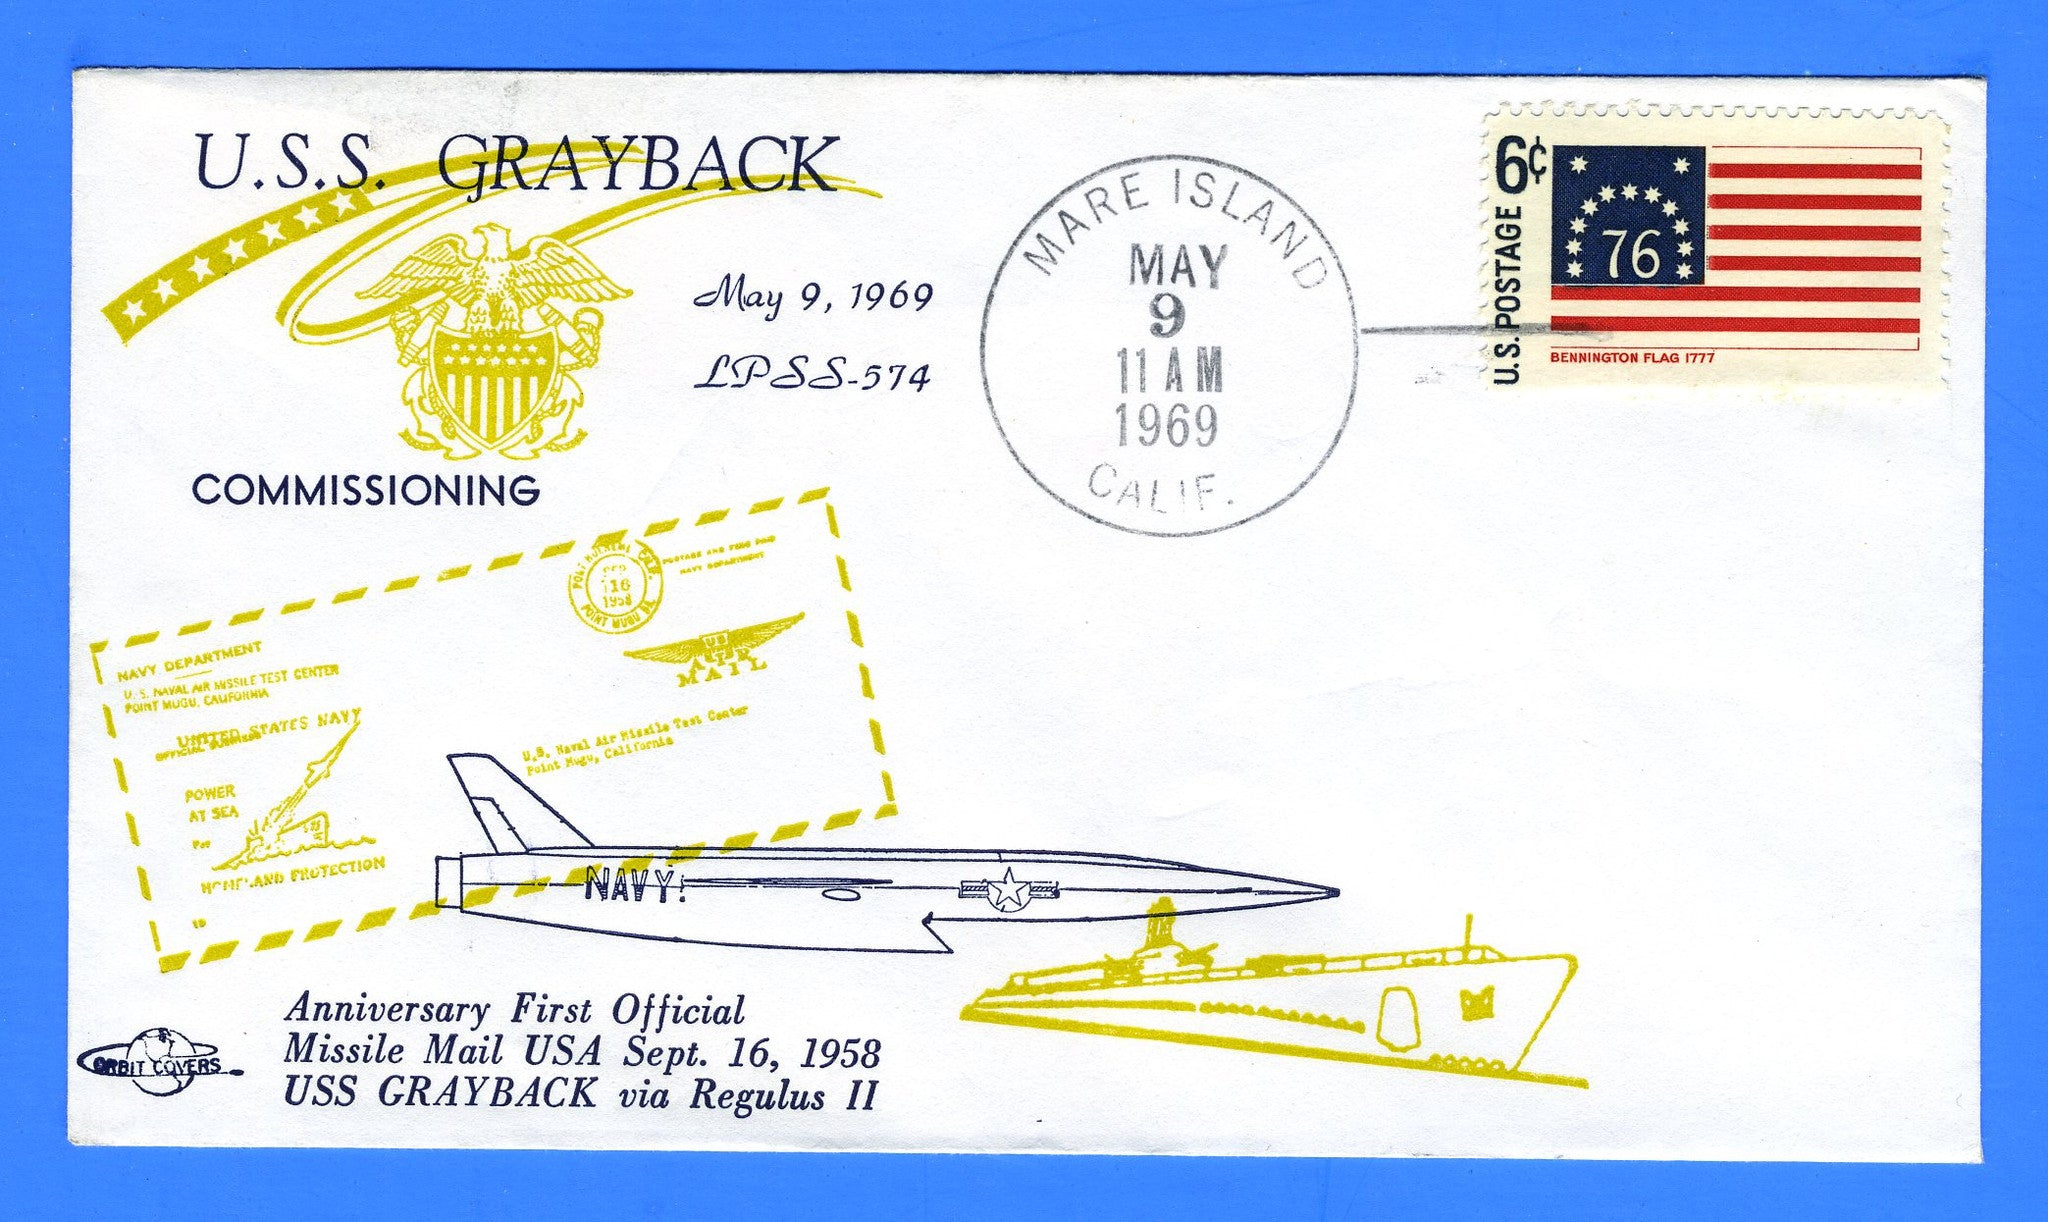 USS Grayback LPSS-574 Recommissioned as Amphibious Transport Submarine May May 9, 1969